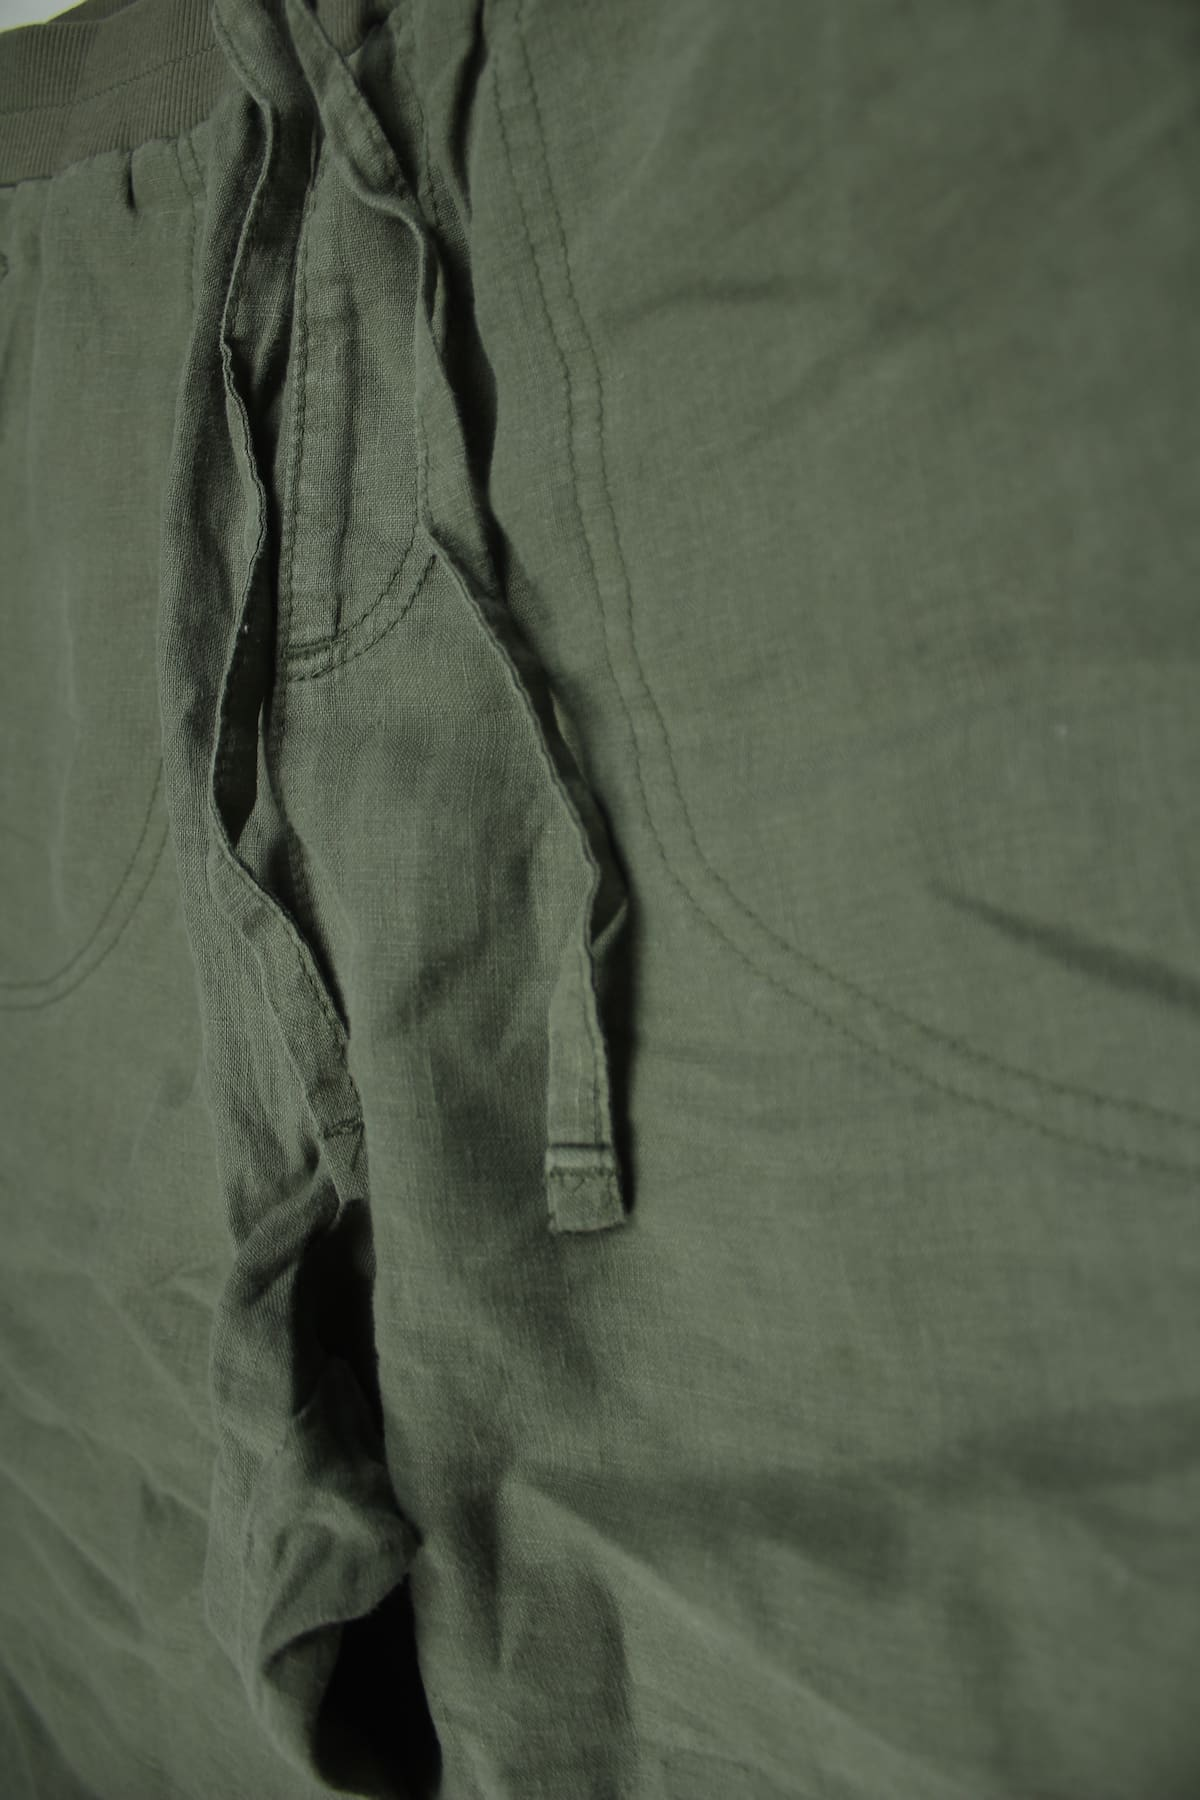 Second-hand Clothing - Women, Trousers, Second-Hand Clothing